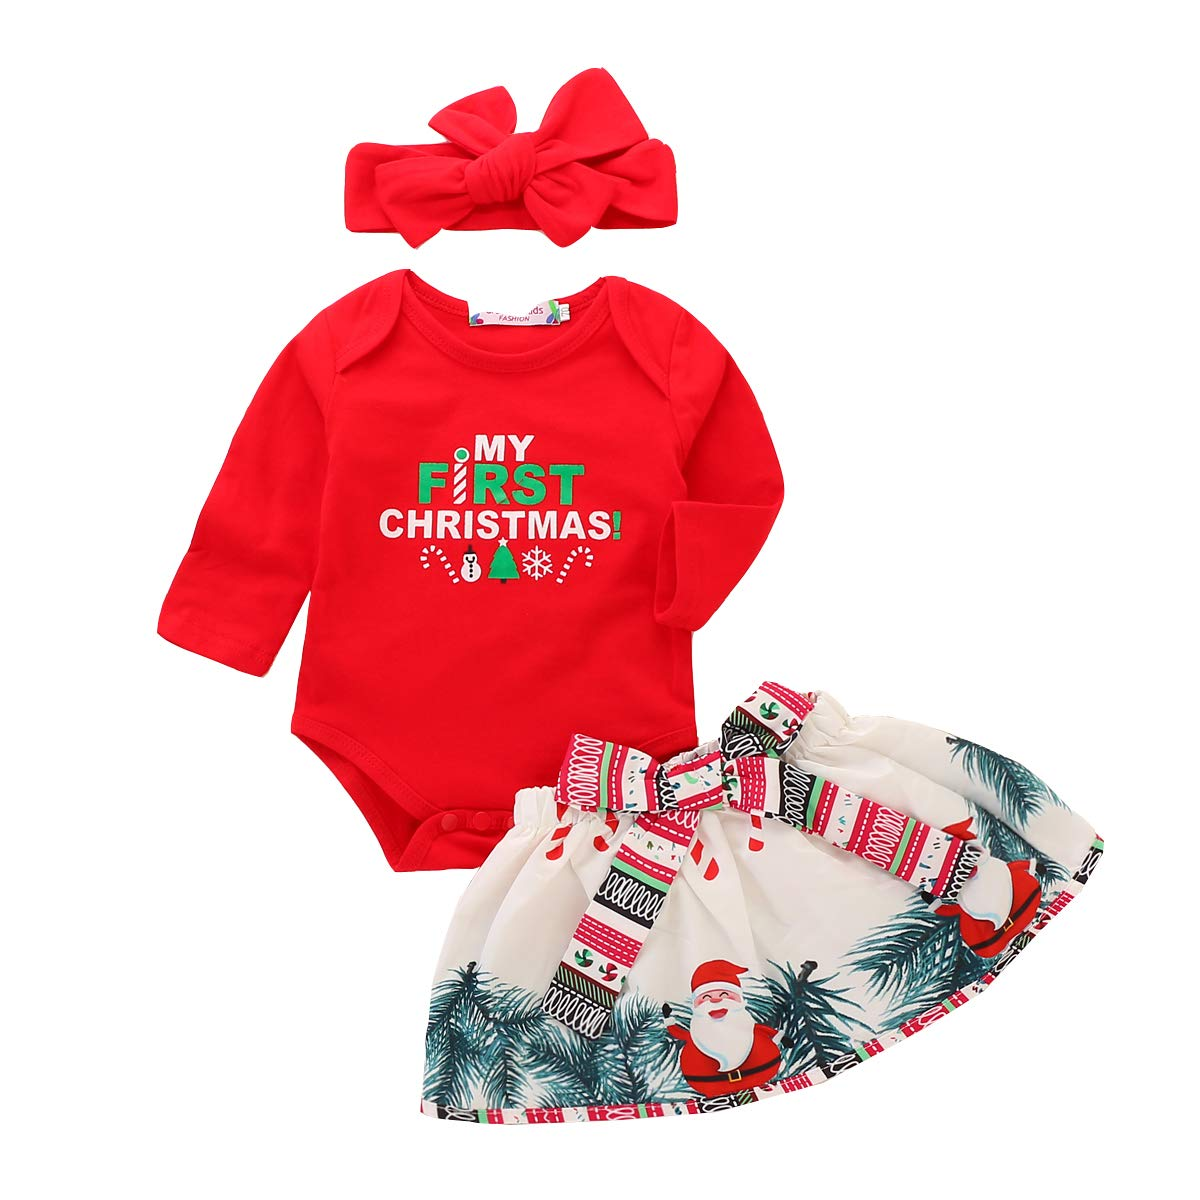 7faccd8f6 3pc Baby Girls Clothes,Long Sleeve My First Christmas Romper+Cute Deer Dress  Outfit Set (Red, 12-18 Months)